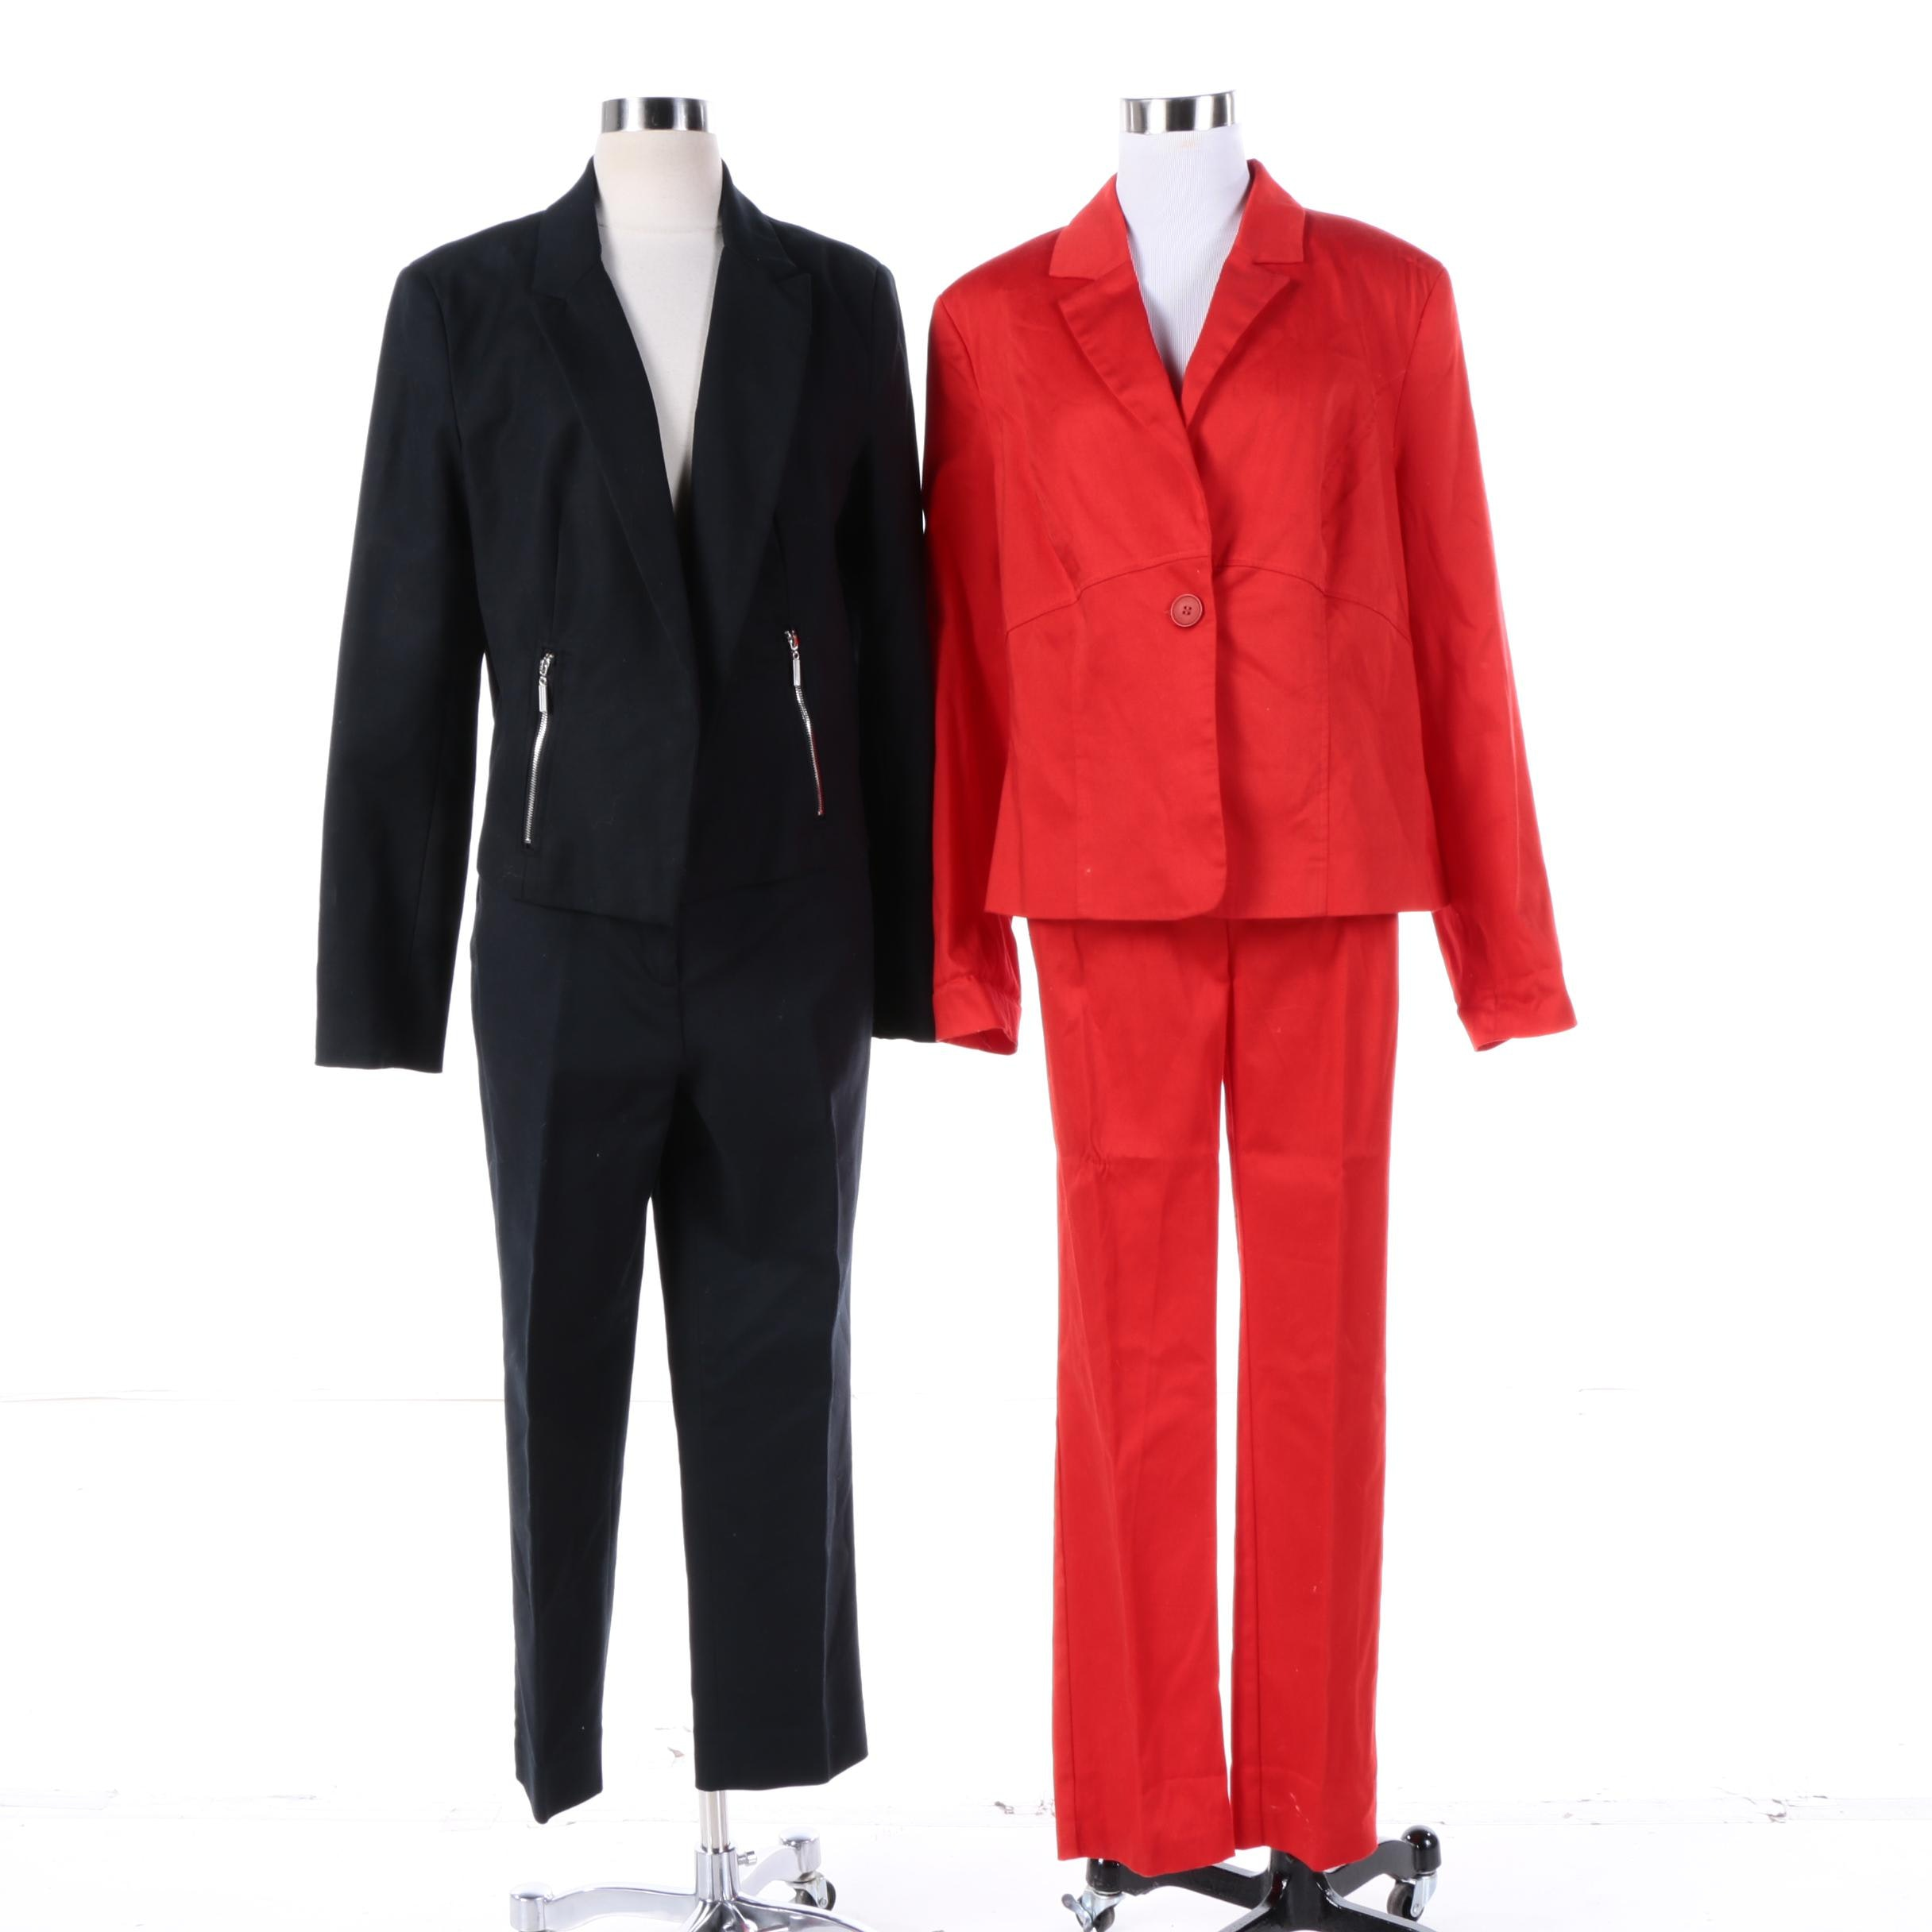 Women's Grace Elements and Venus Cotton Blend Pantsuits